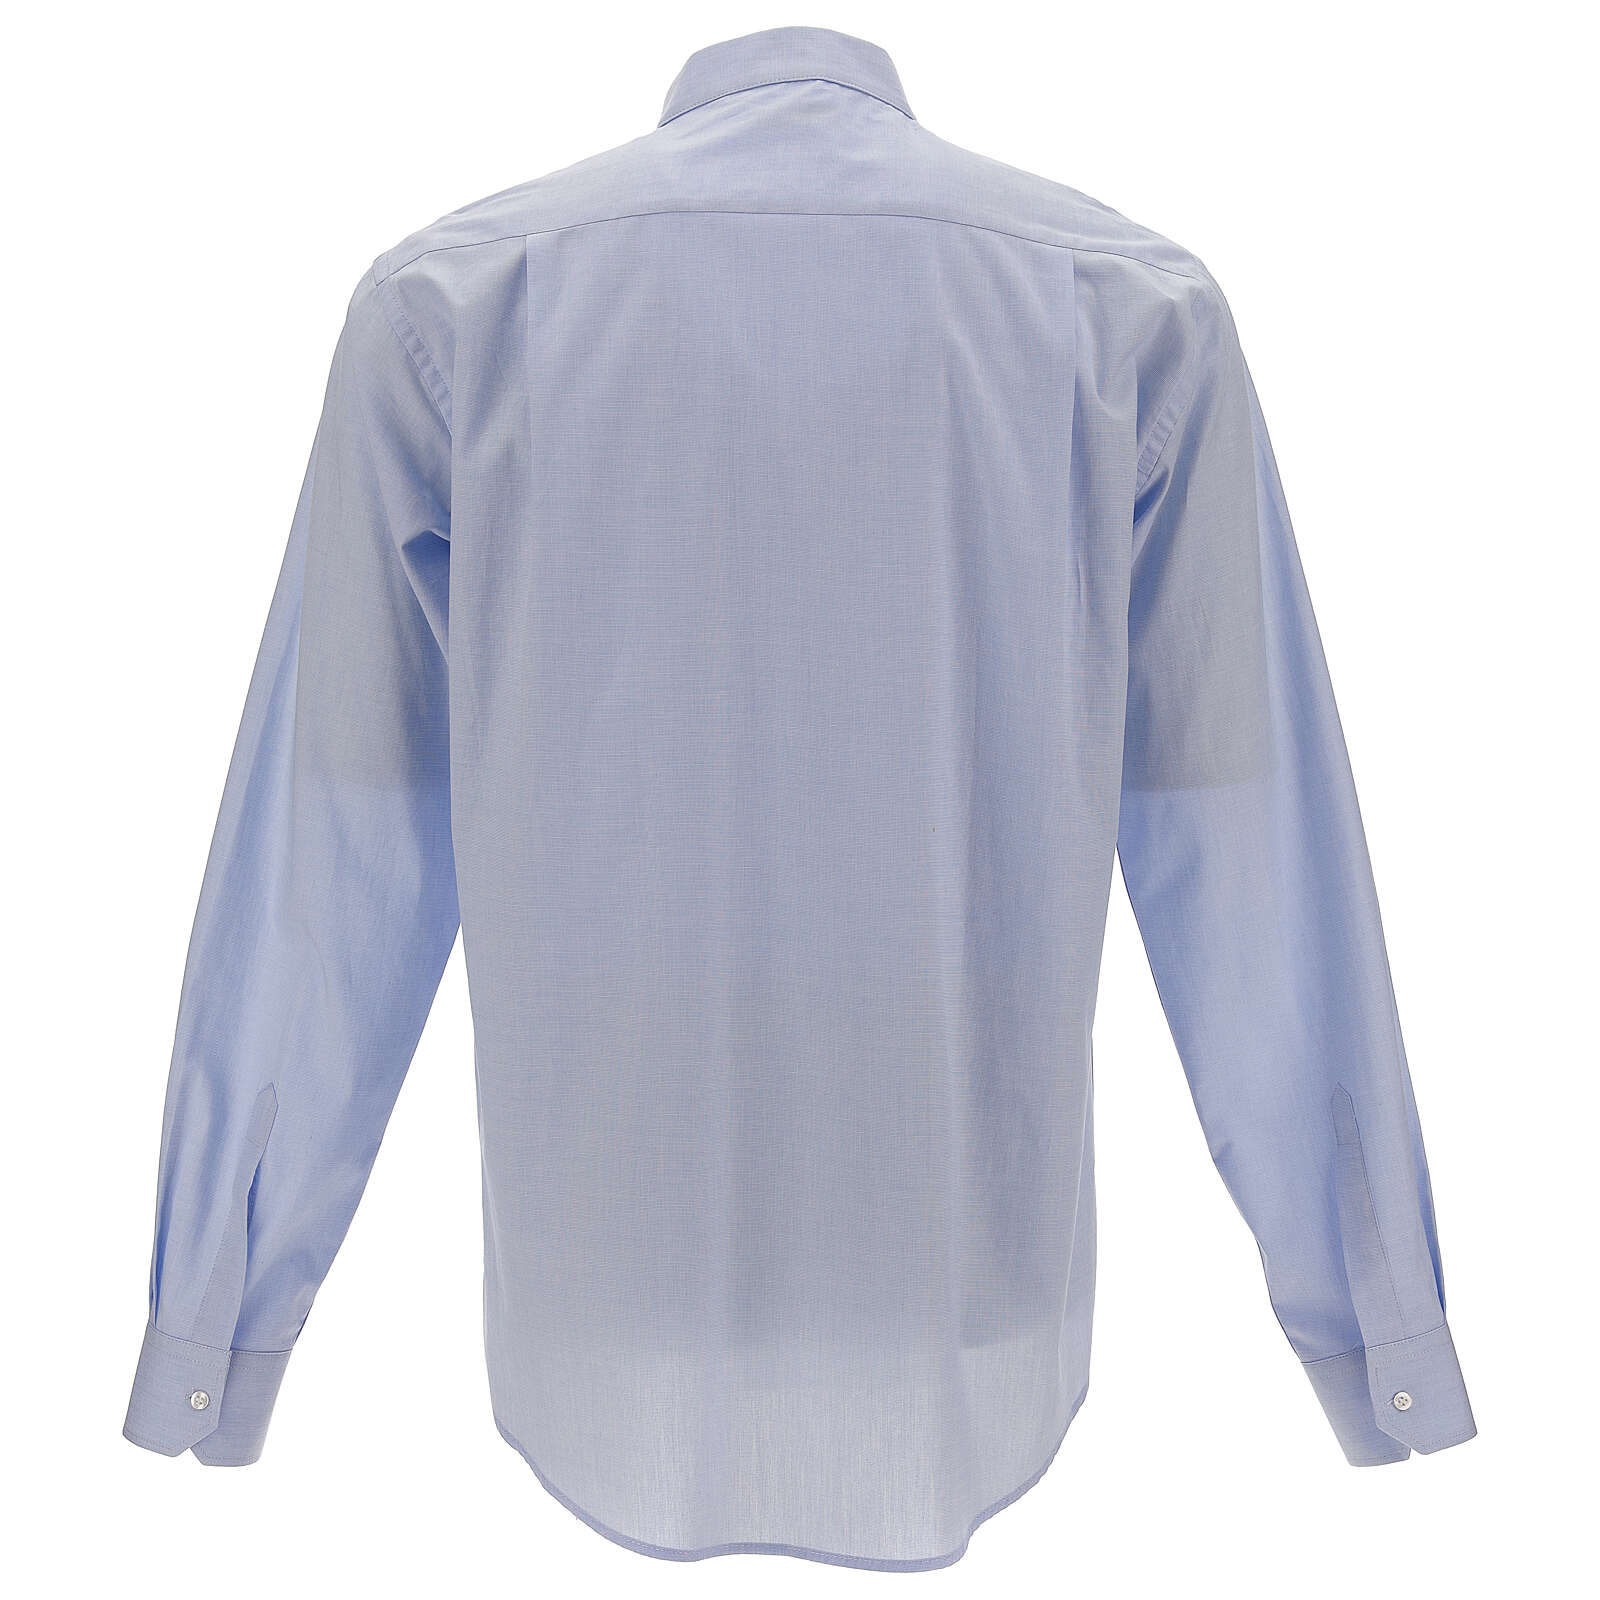 Camisa clergy celeste manga larga 4